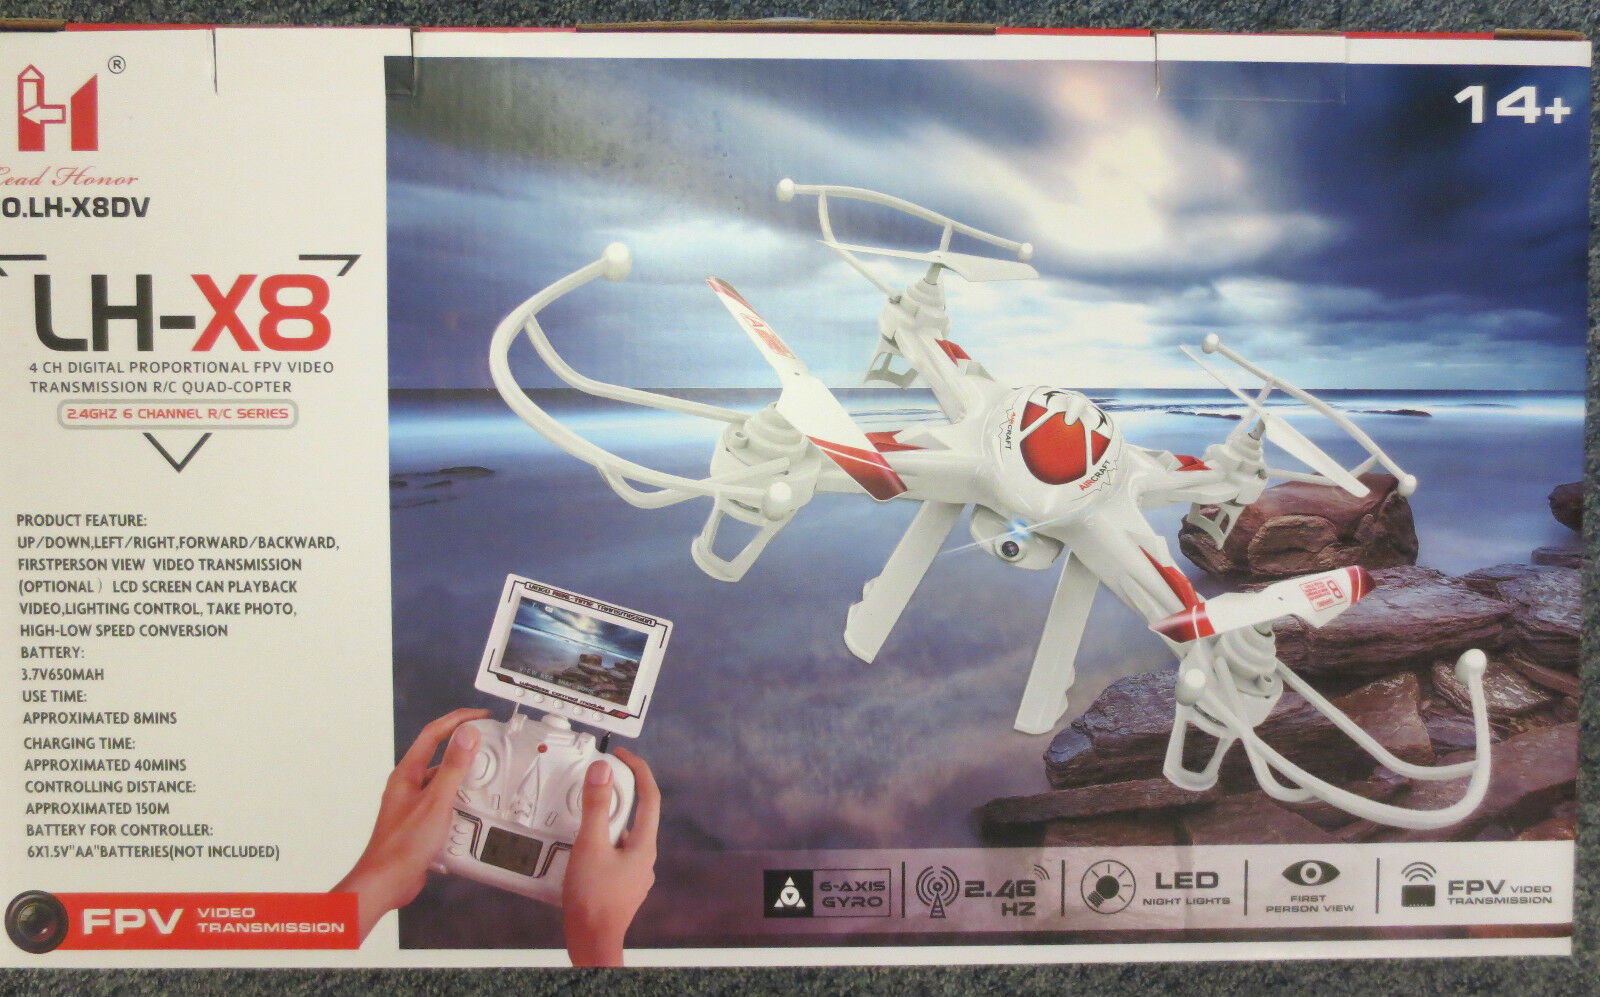 The LH-X8 F (FPV) Quadcopter drone with first person view and LCD Display WI-FI